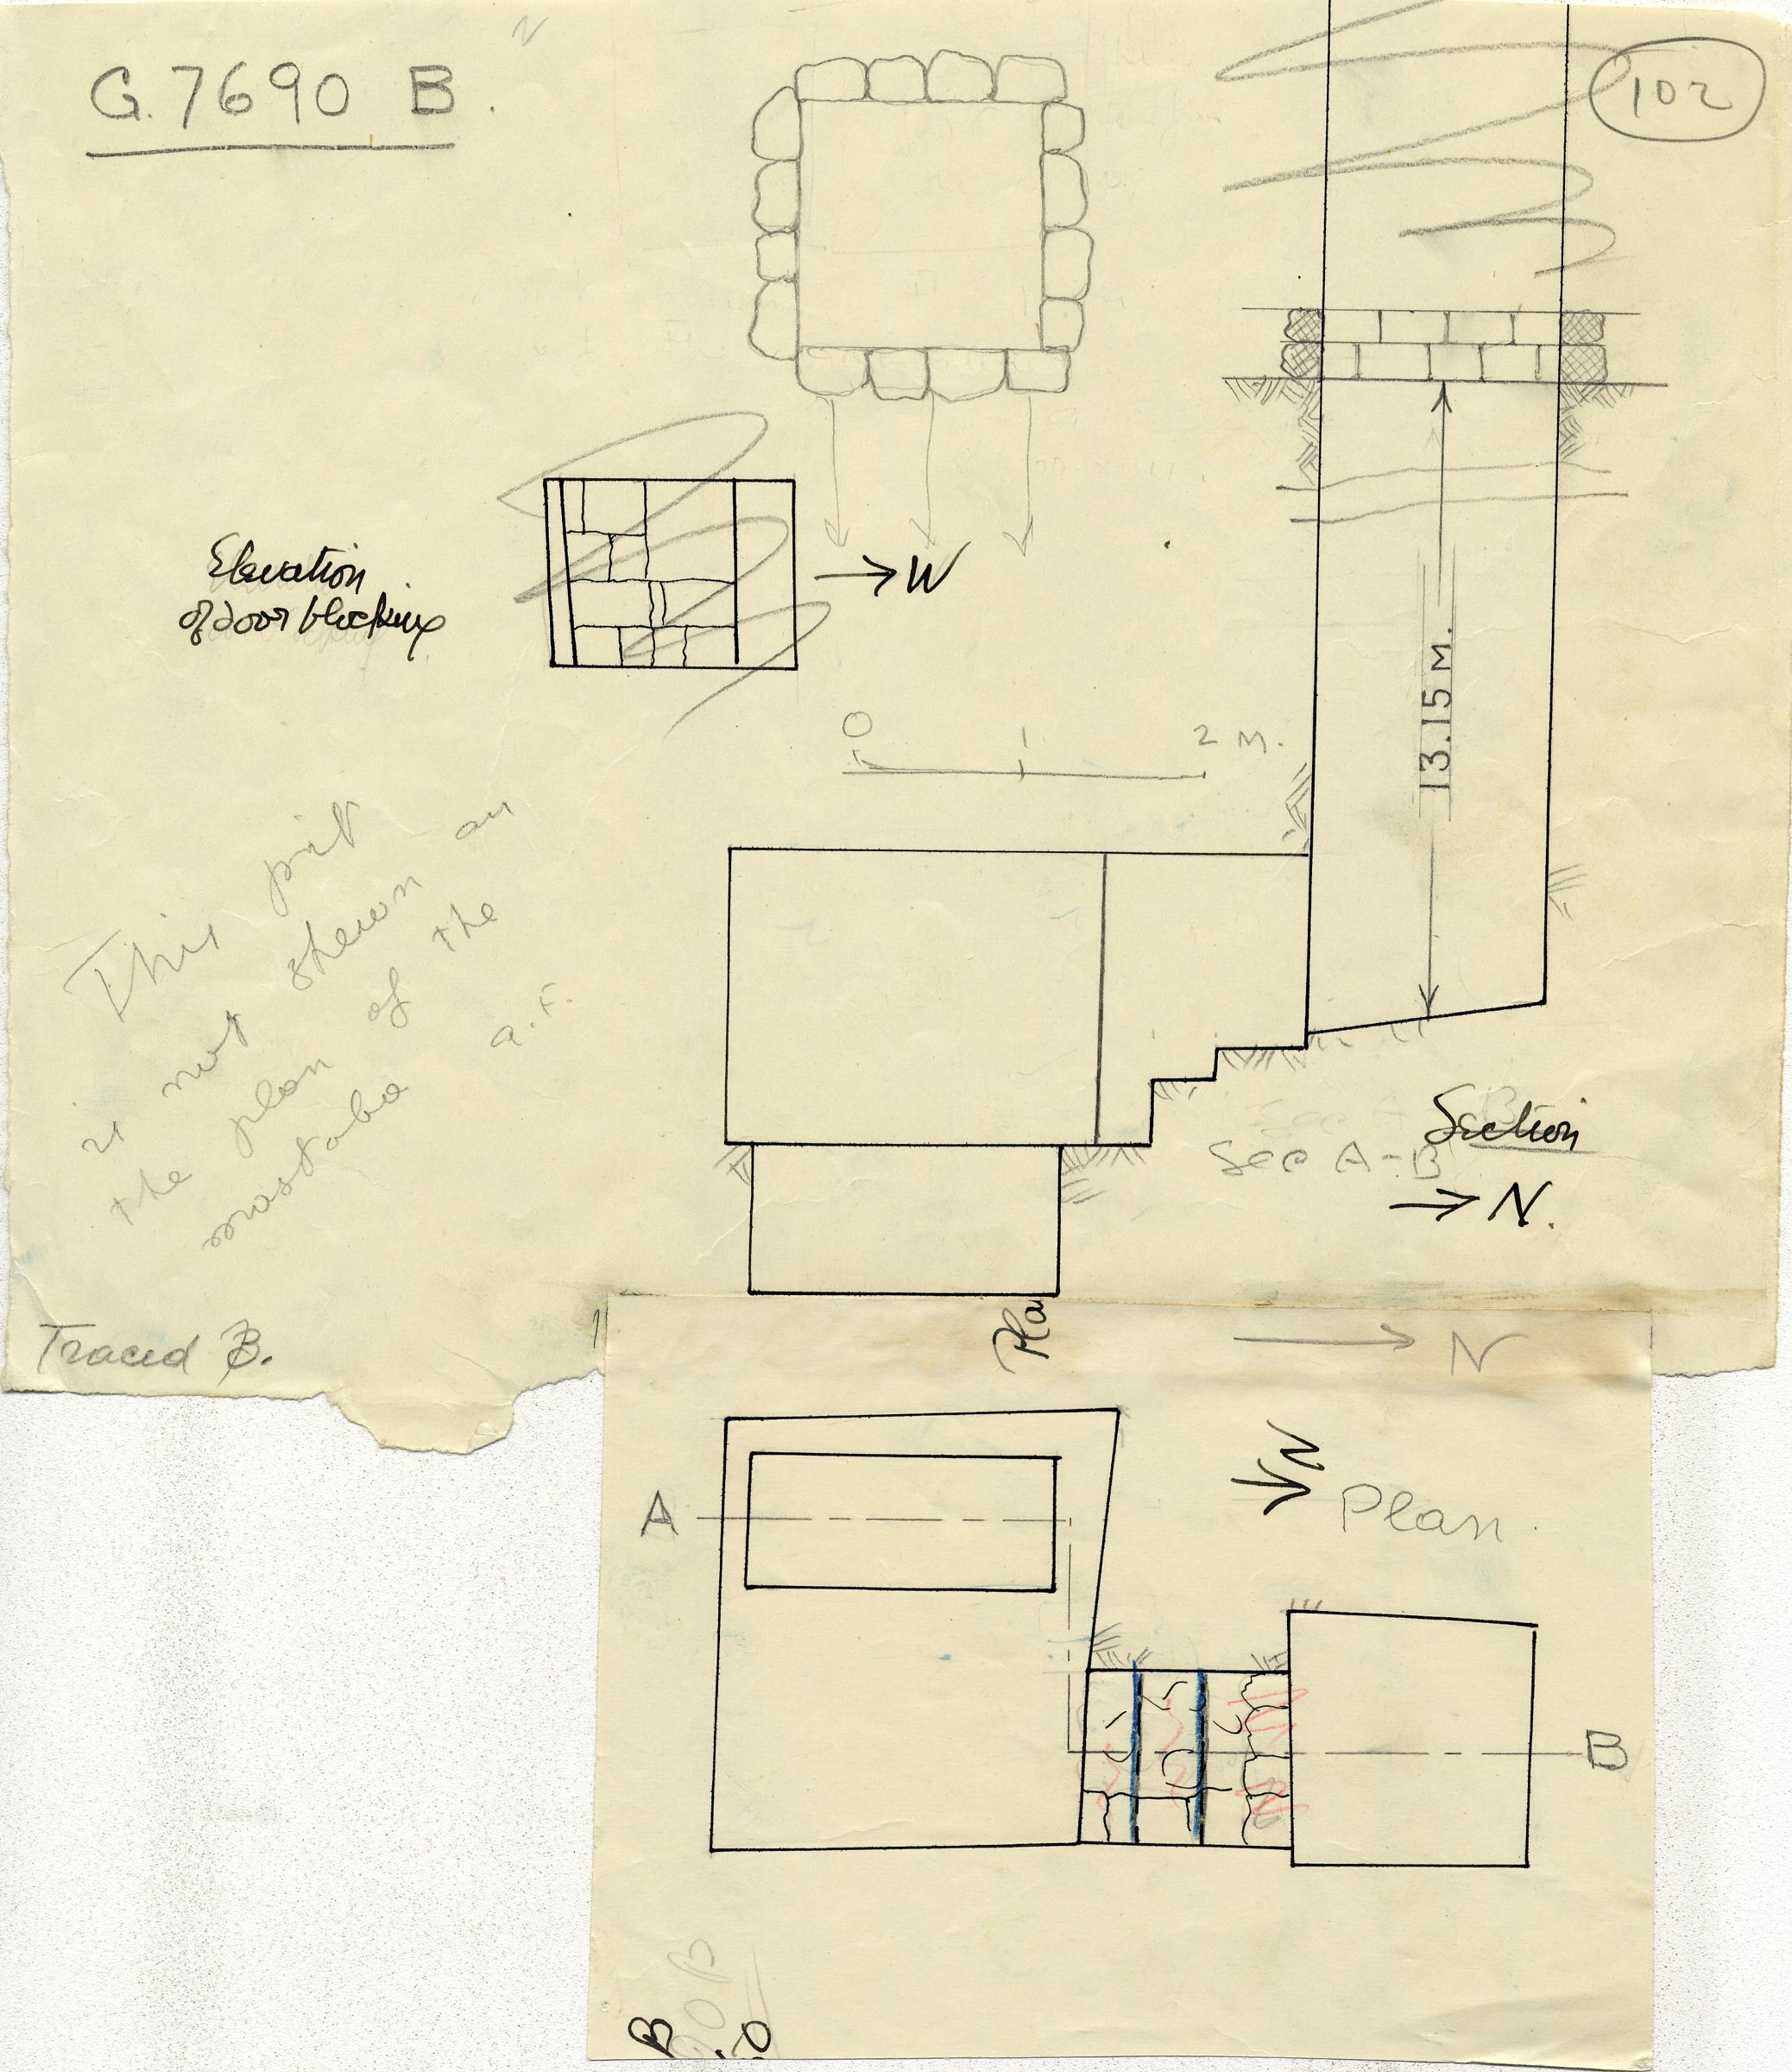 Maps and plans: G 7690, Shaft B